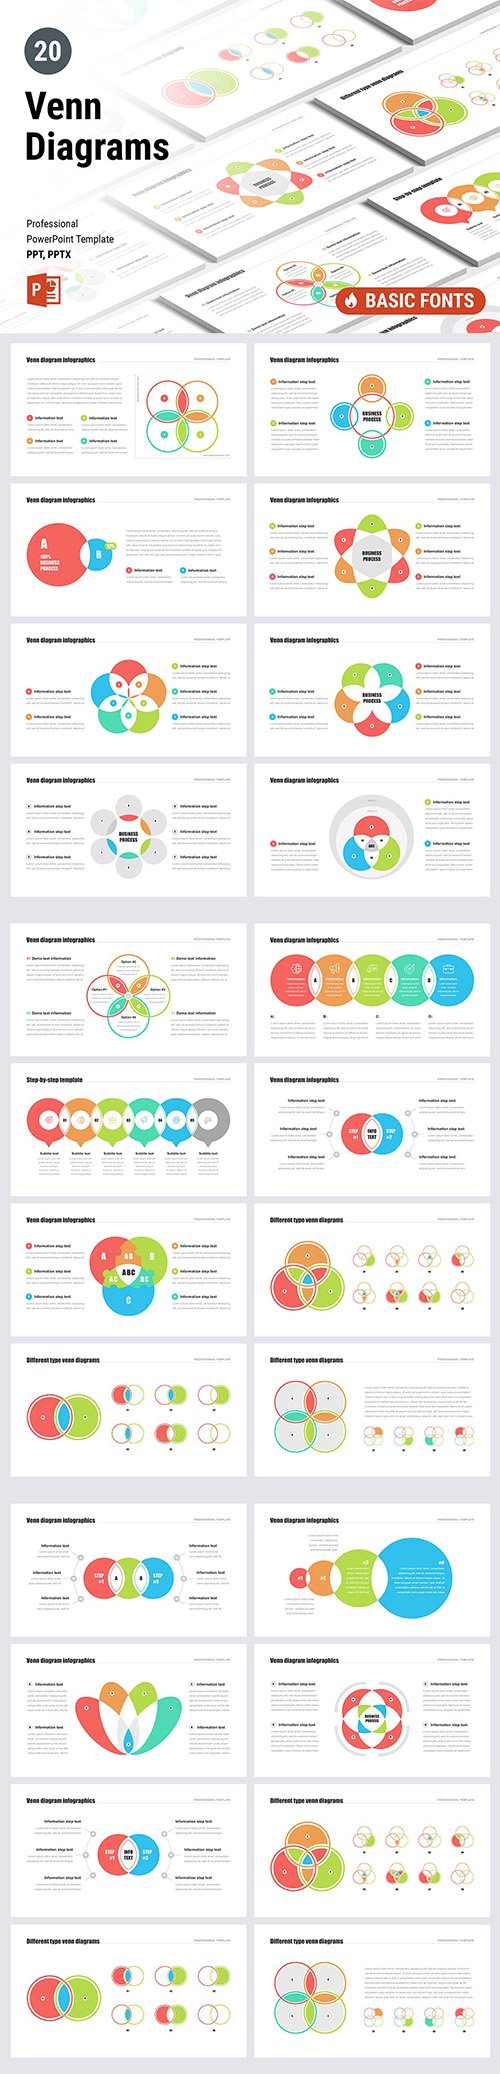 Venn Diagrams Pack for Powerpoint, Keynote and Google Slides Template